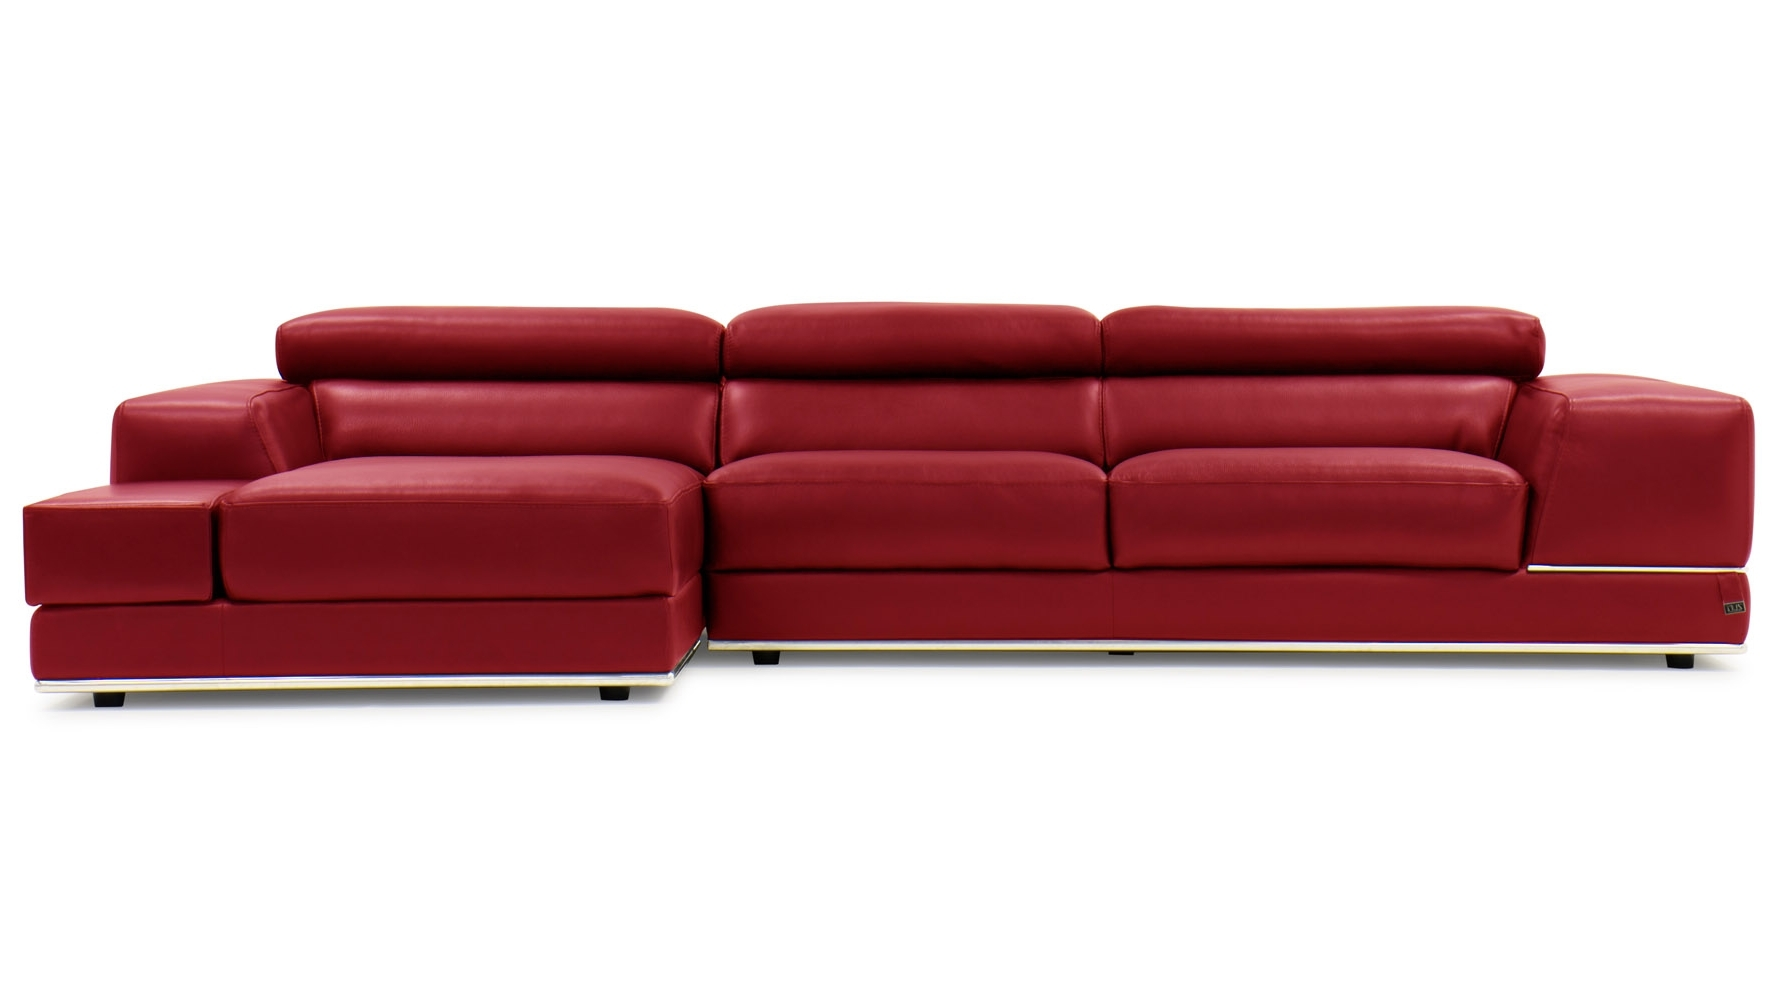 Zuri Furniture Intended For Red Leather Sofas (View 20 of 20)